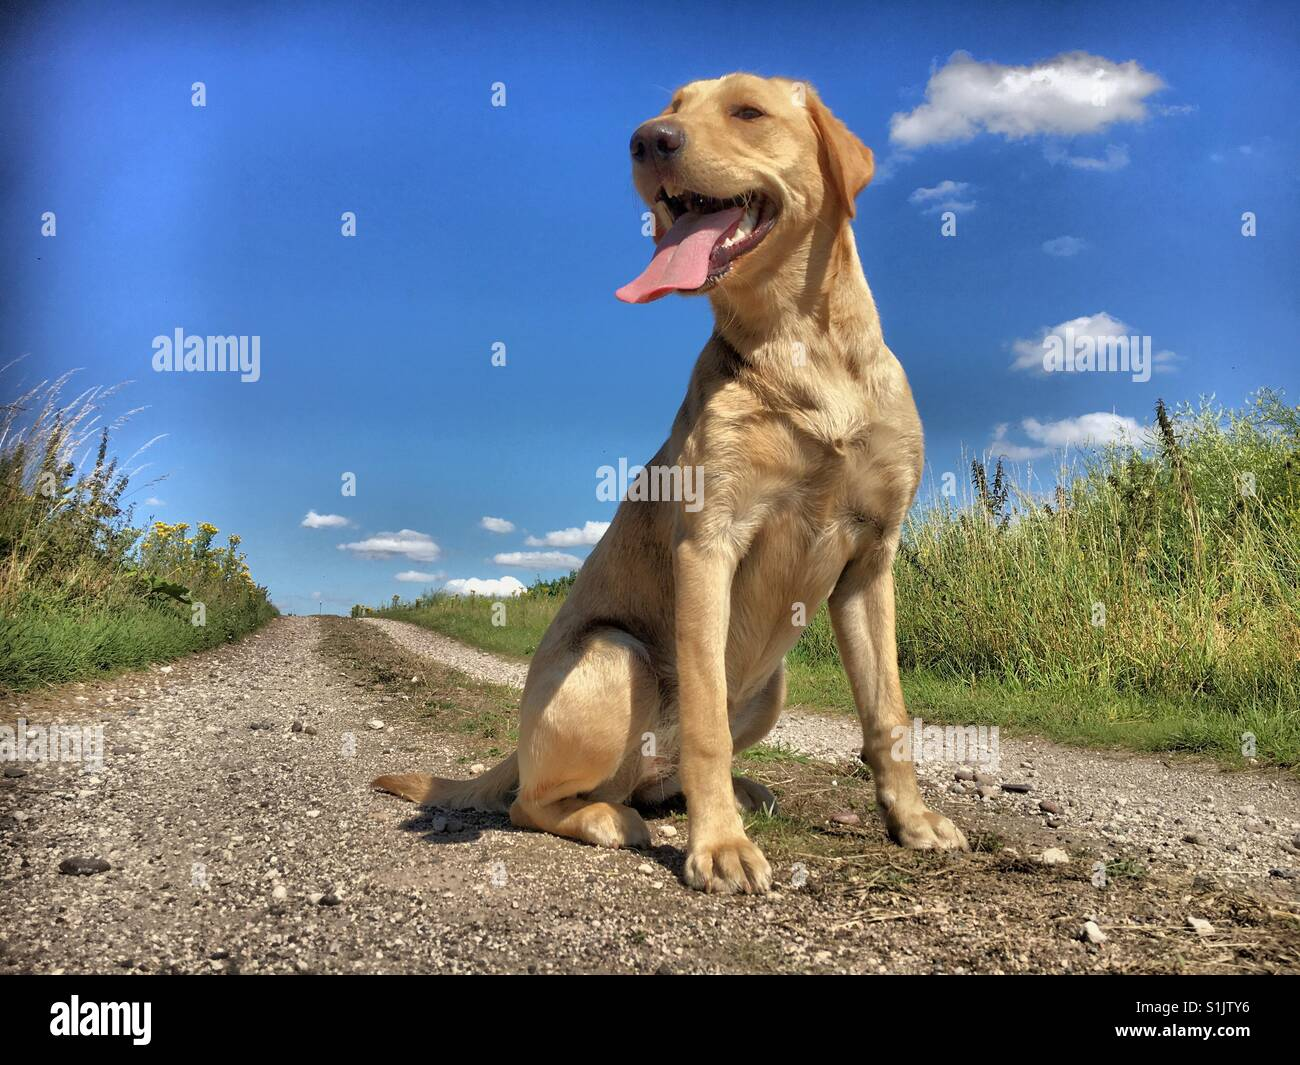 Labrador dog sat panting on countryside path in the sun - Stock Image